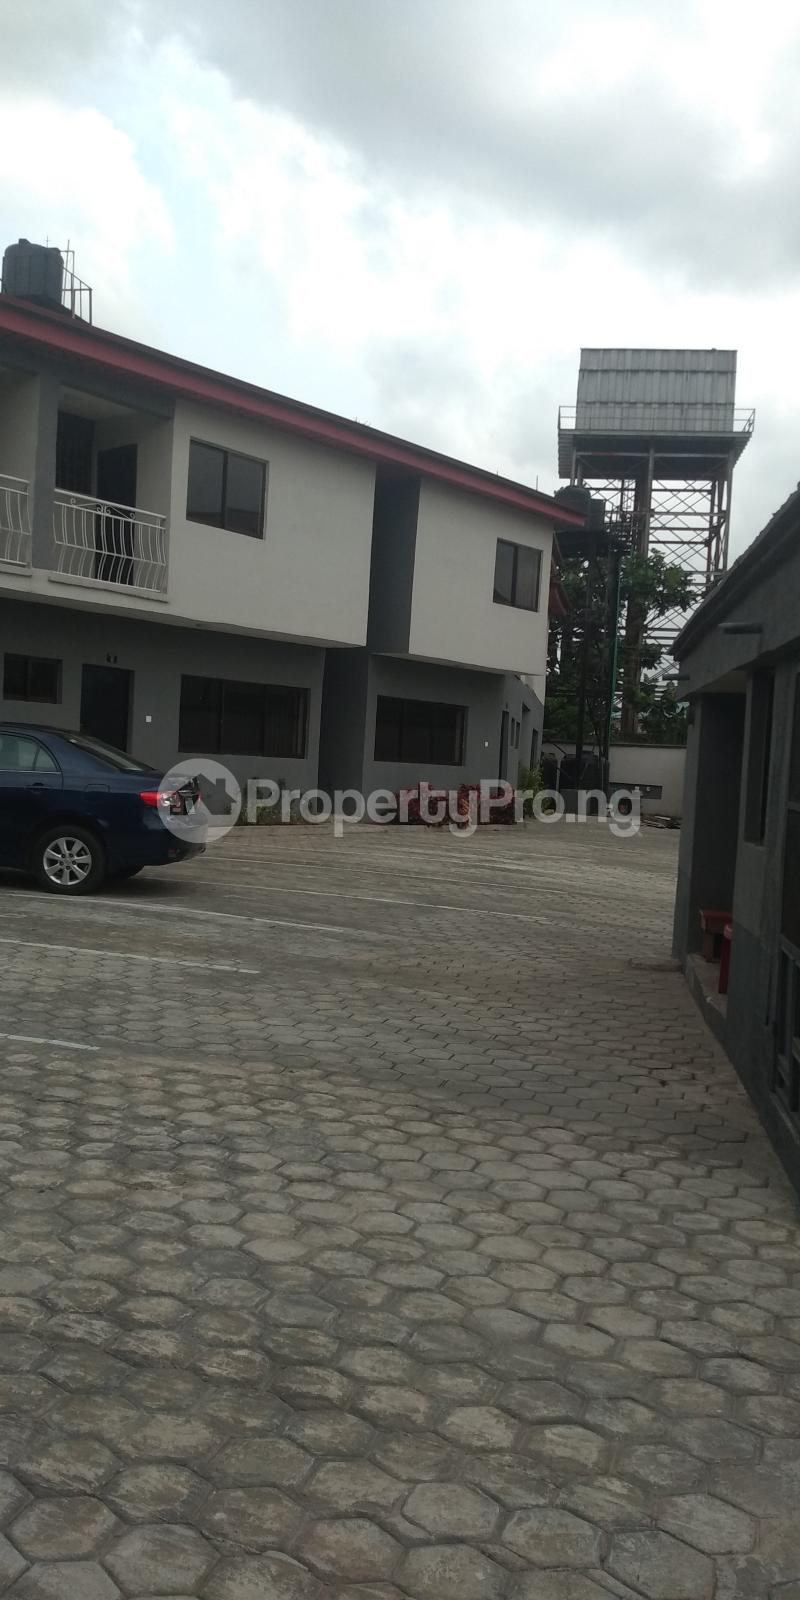 3 bedroom Terraced Duplex House for sale Gbolahun awe street magodo shangisha Magodo GRA Phase 2 Kosofe/Ikosi Lagos - 1